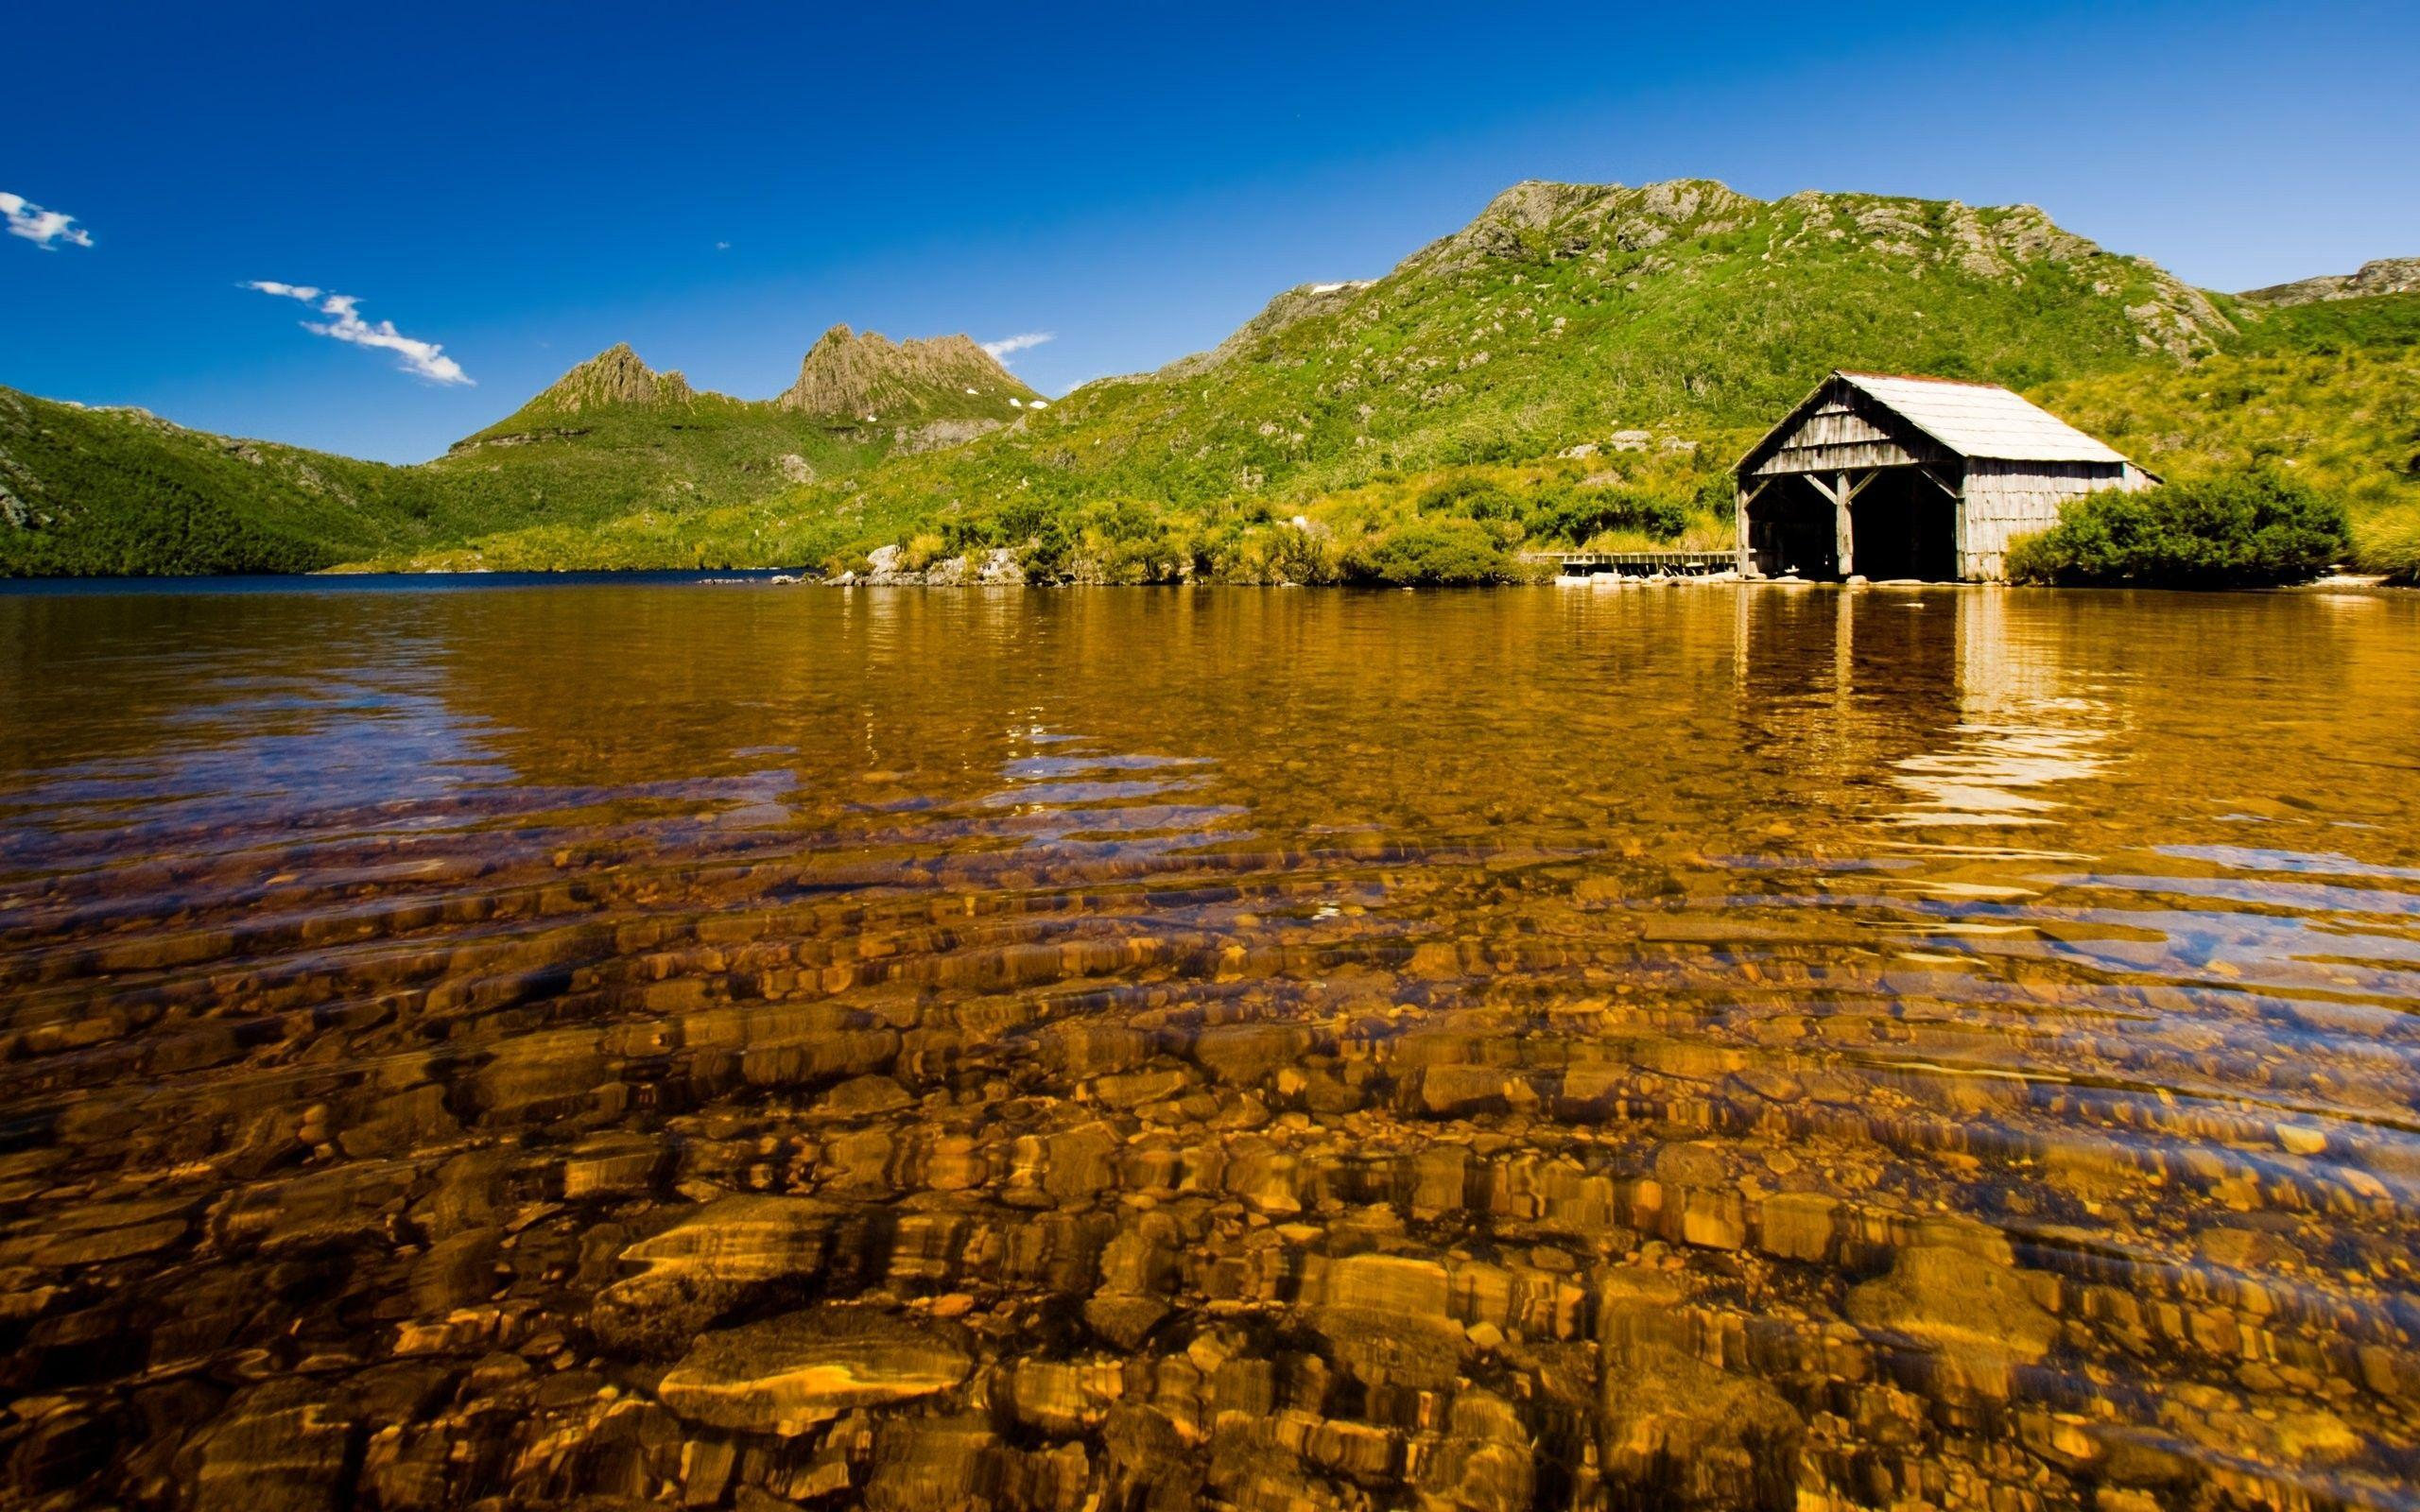 Download the Shallow Boathouse Lake Wallpaper, Shallow Boathouse